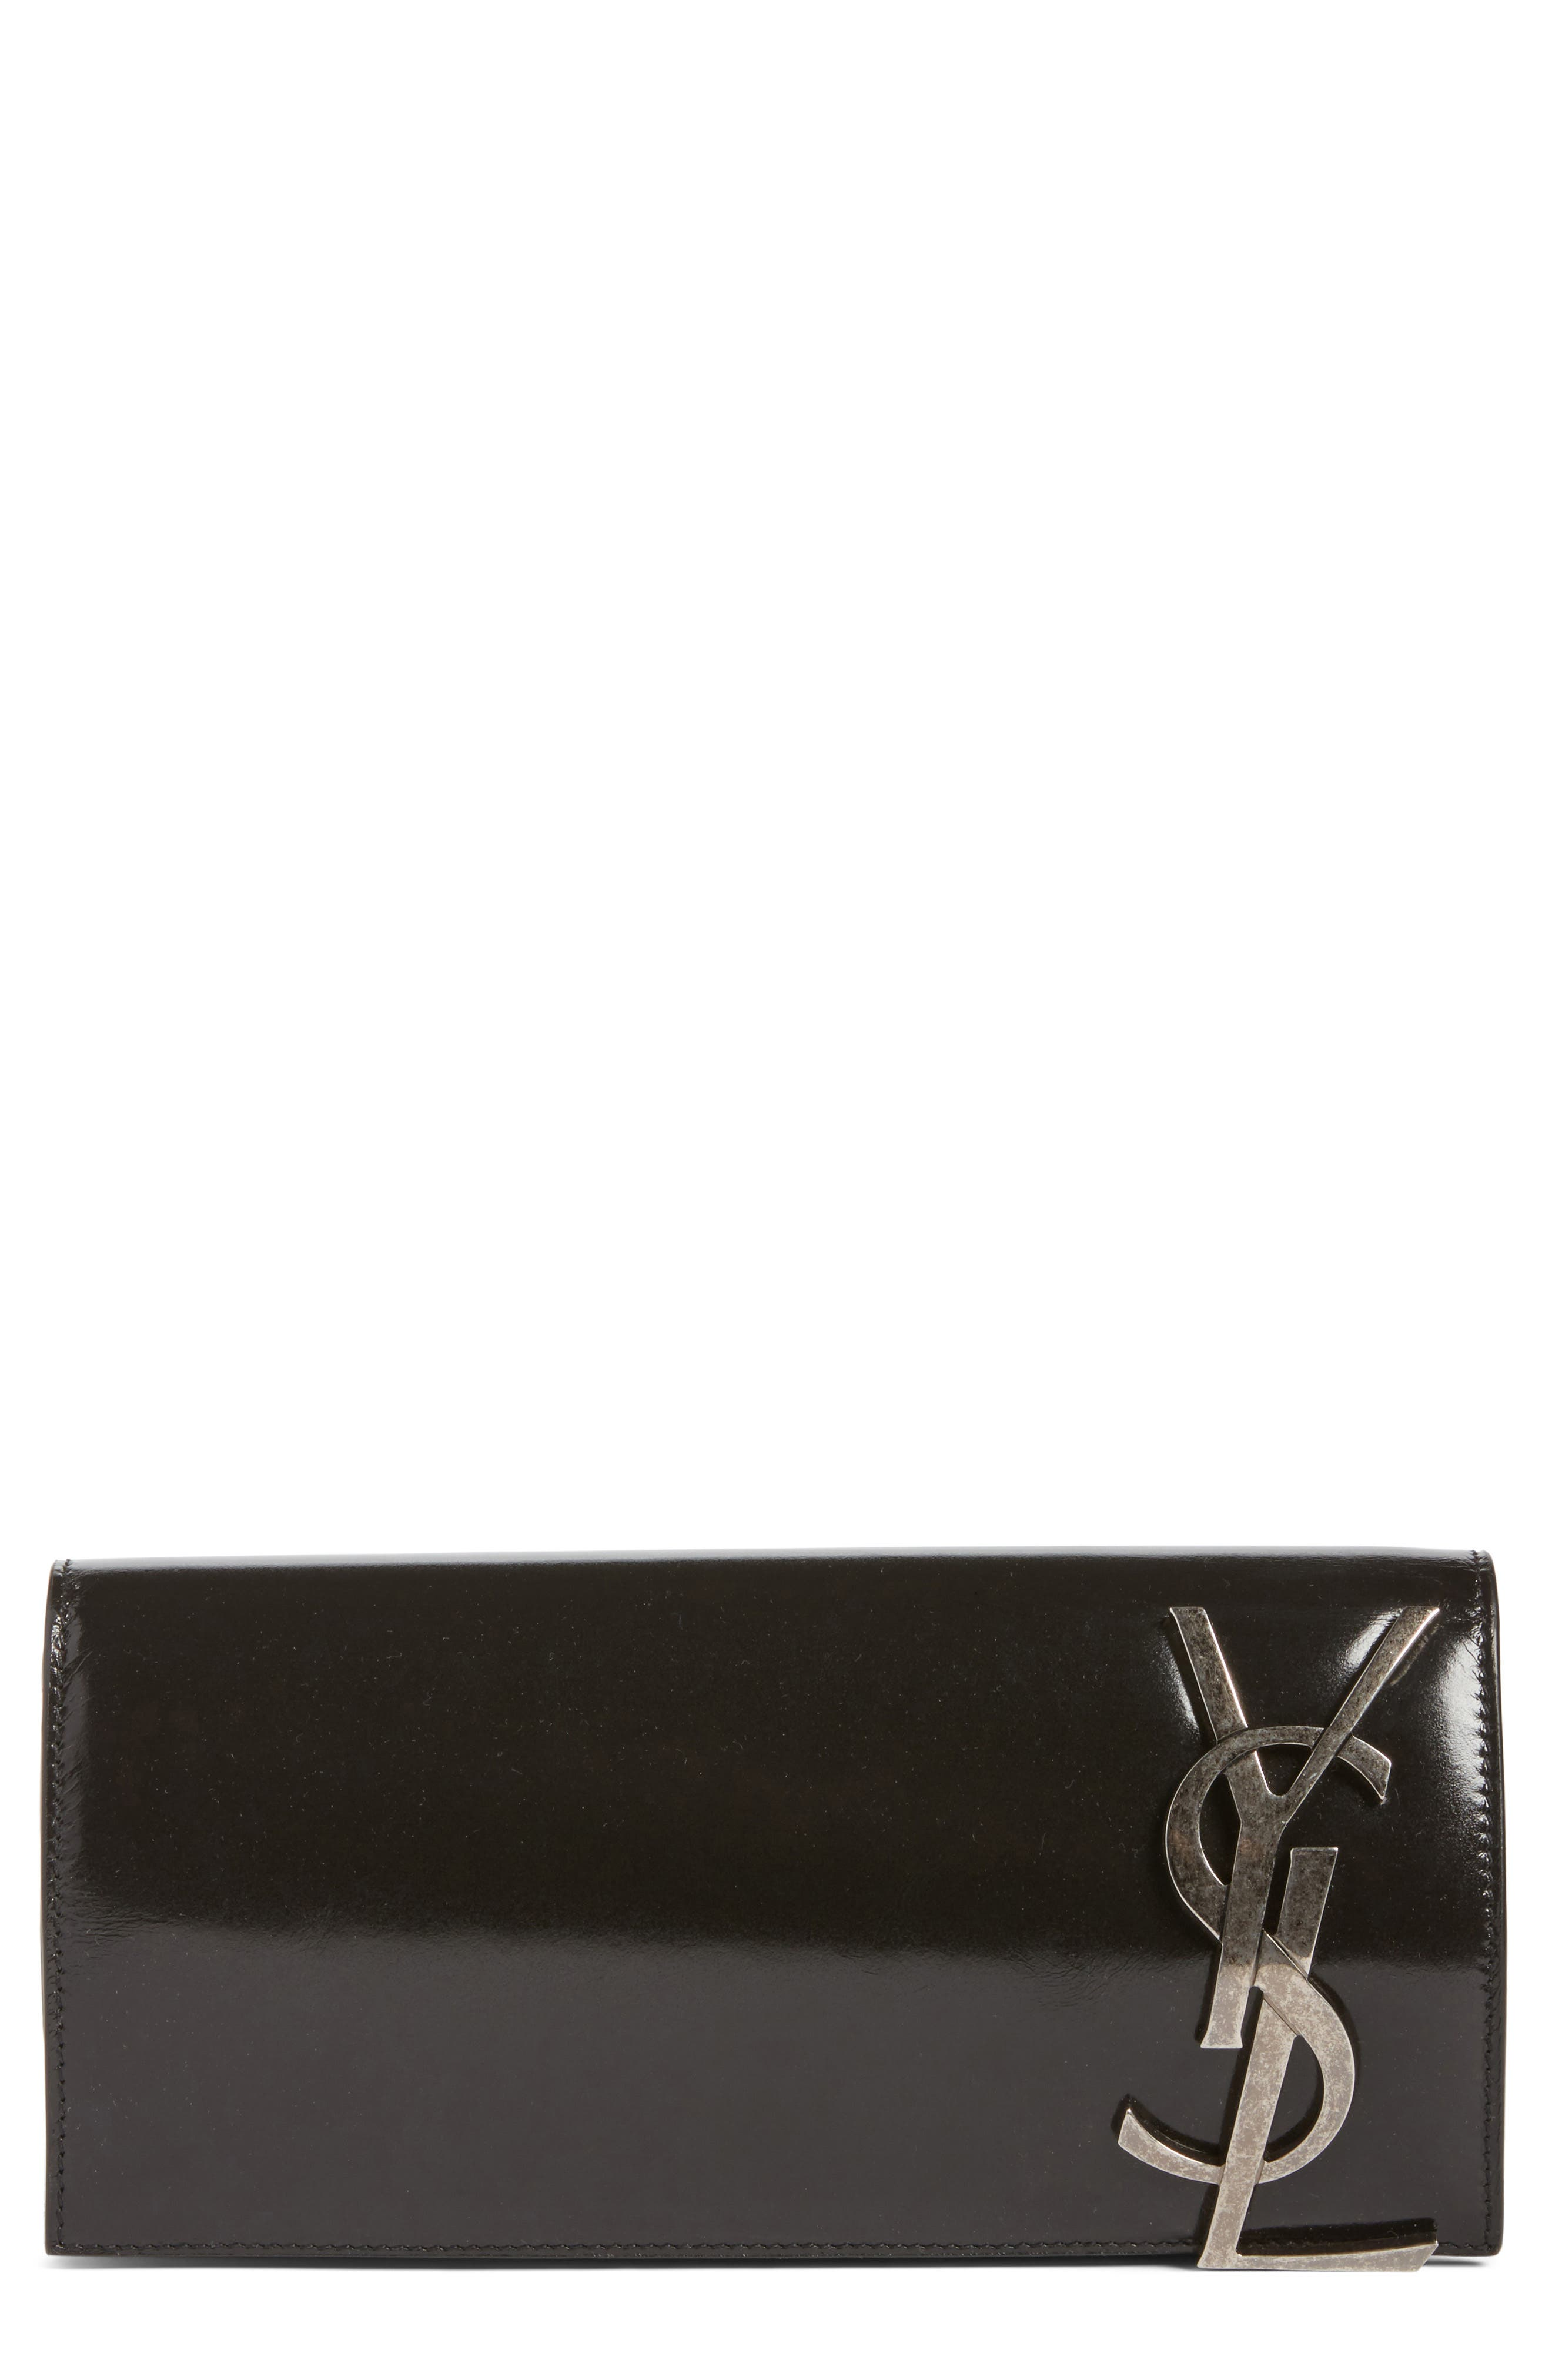 Saint Laurent Smoking Leather Clutch